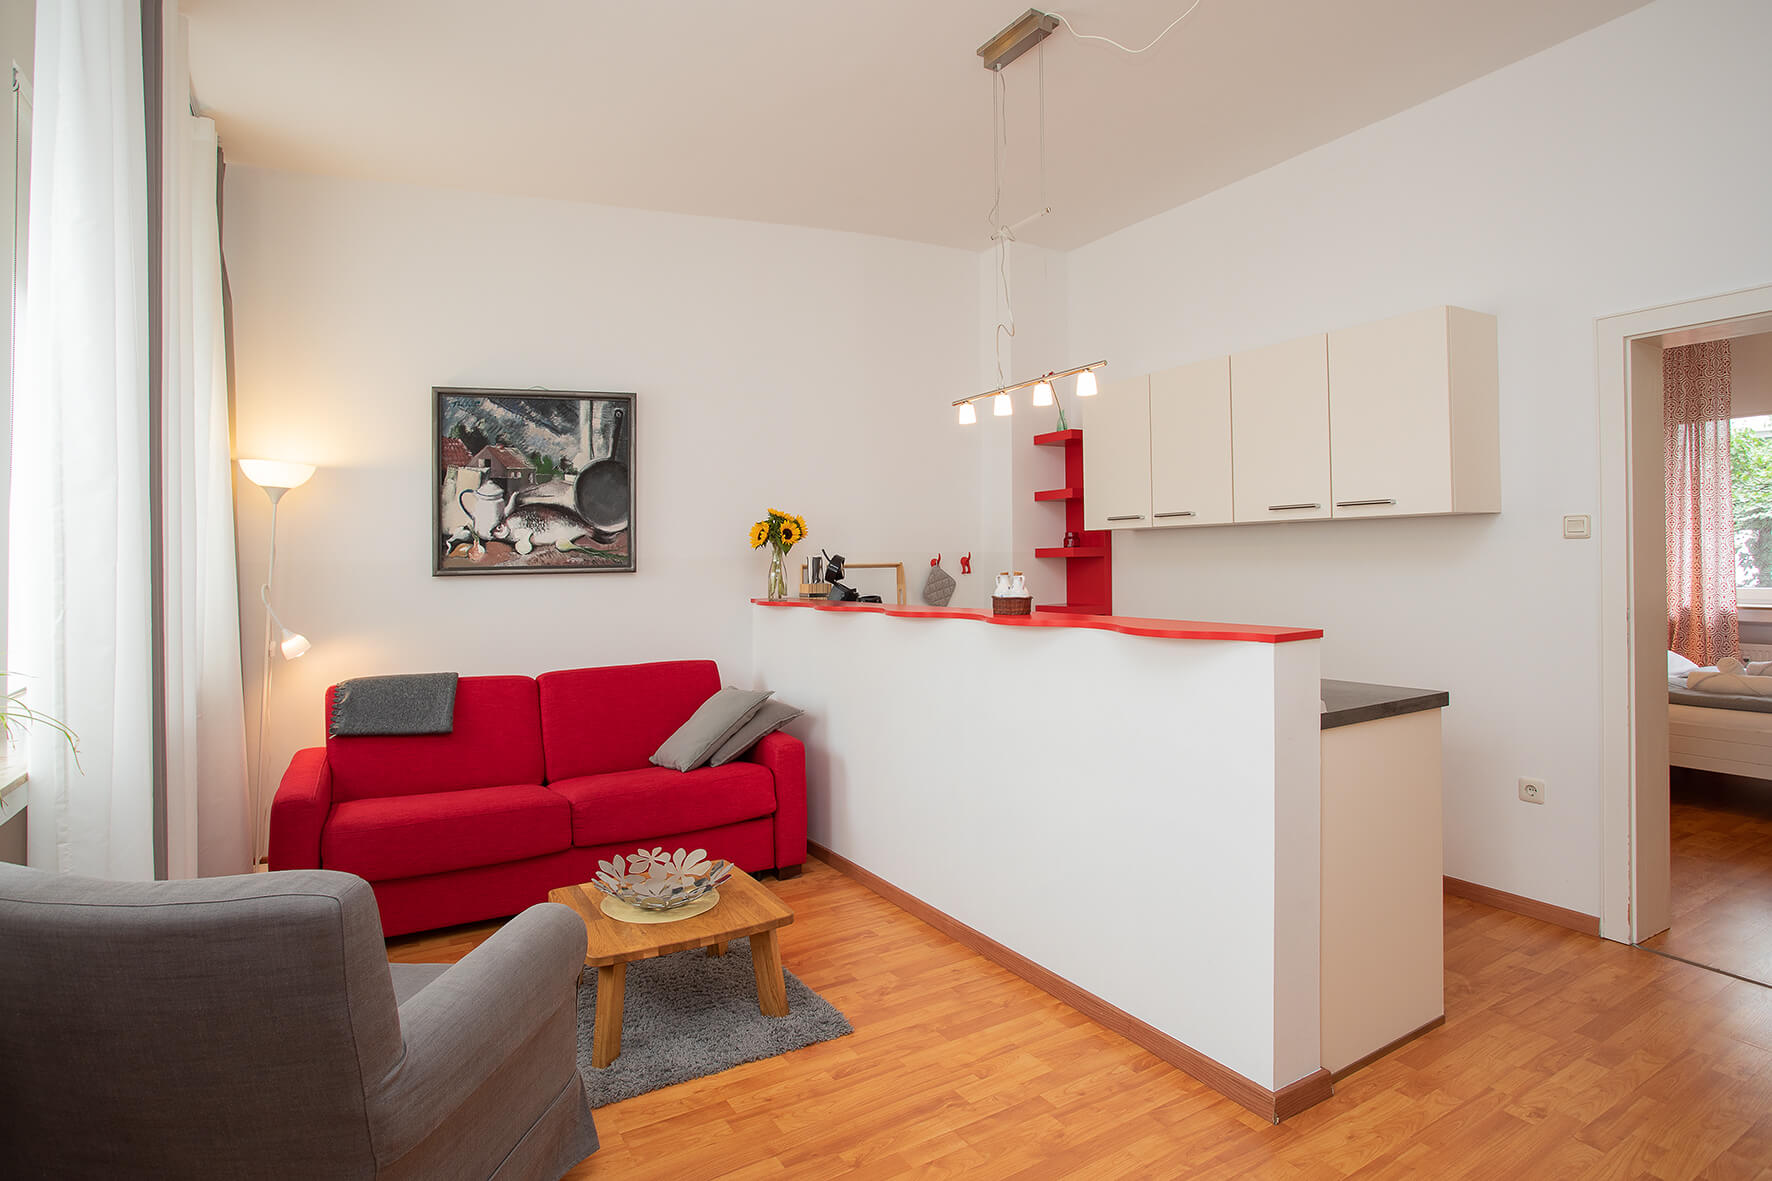 The red apartment